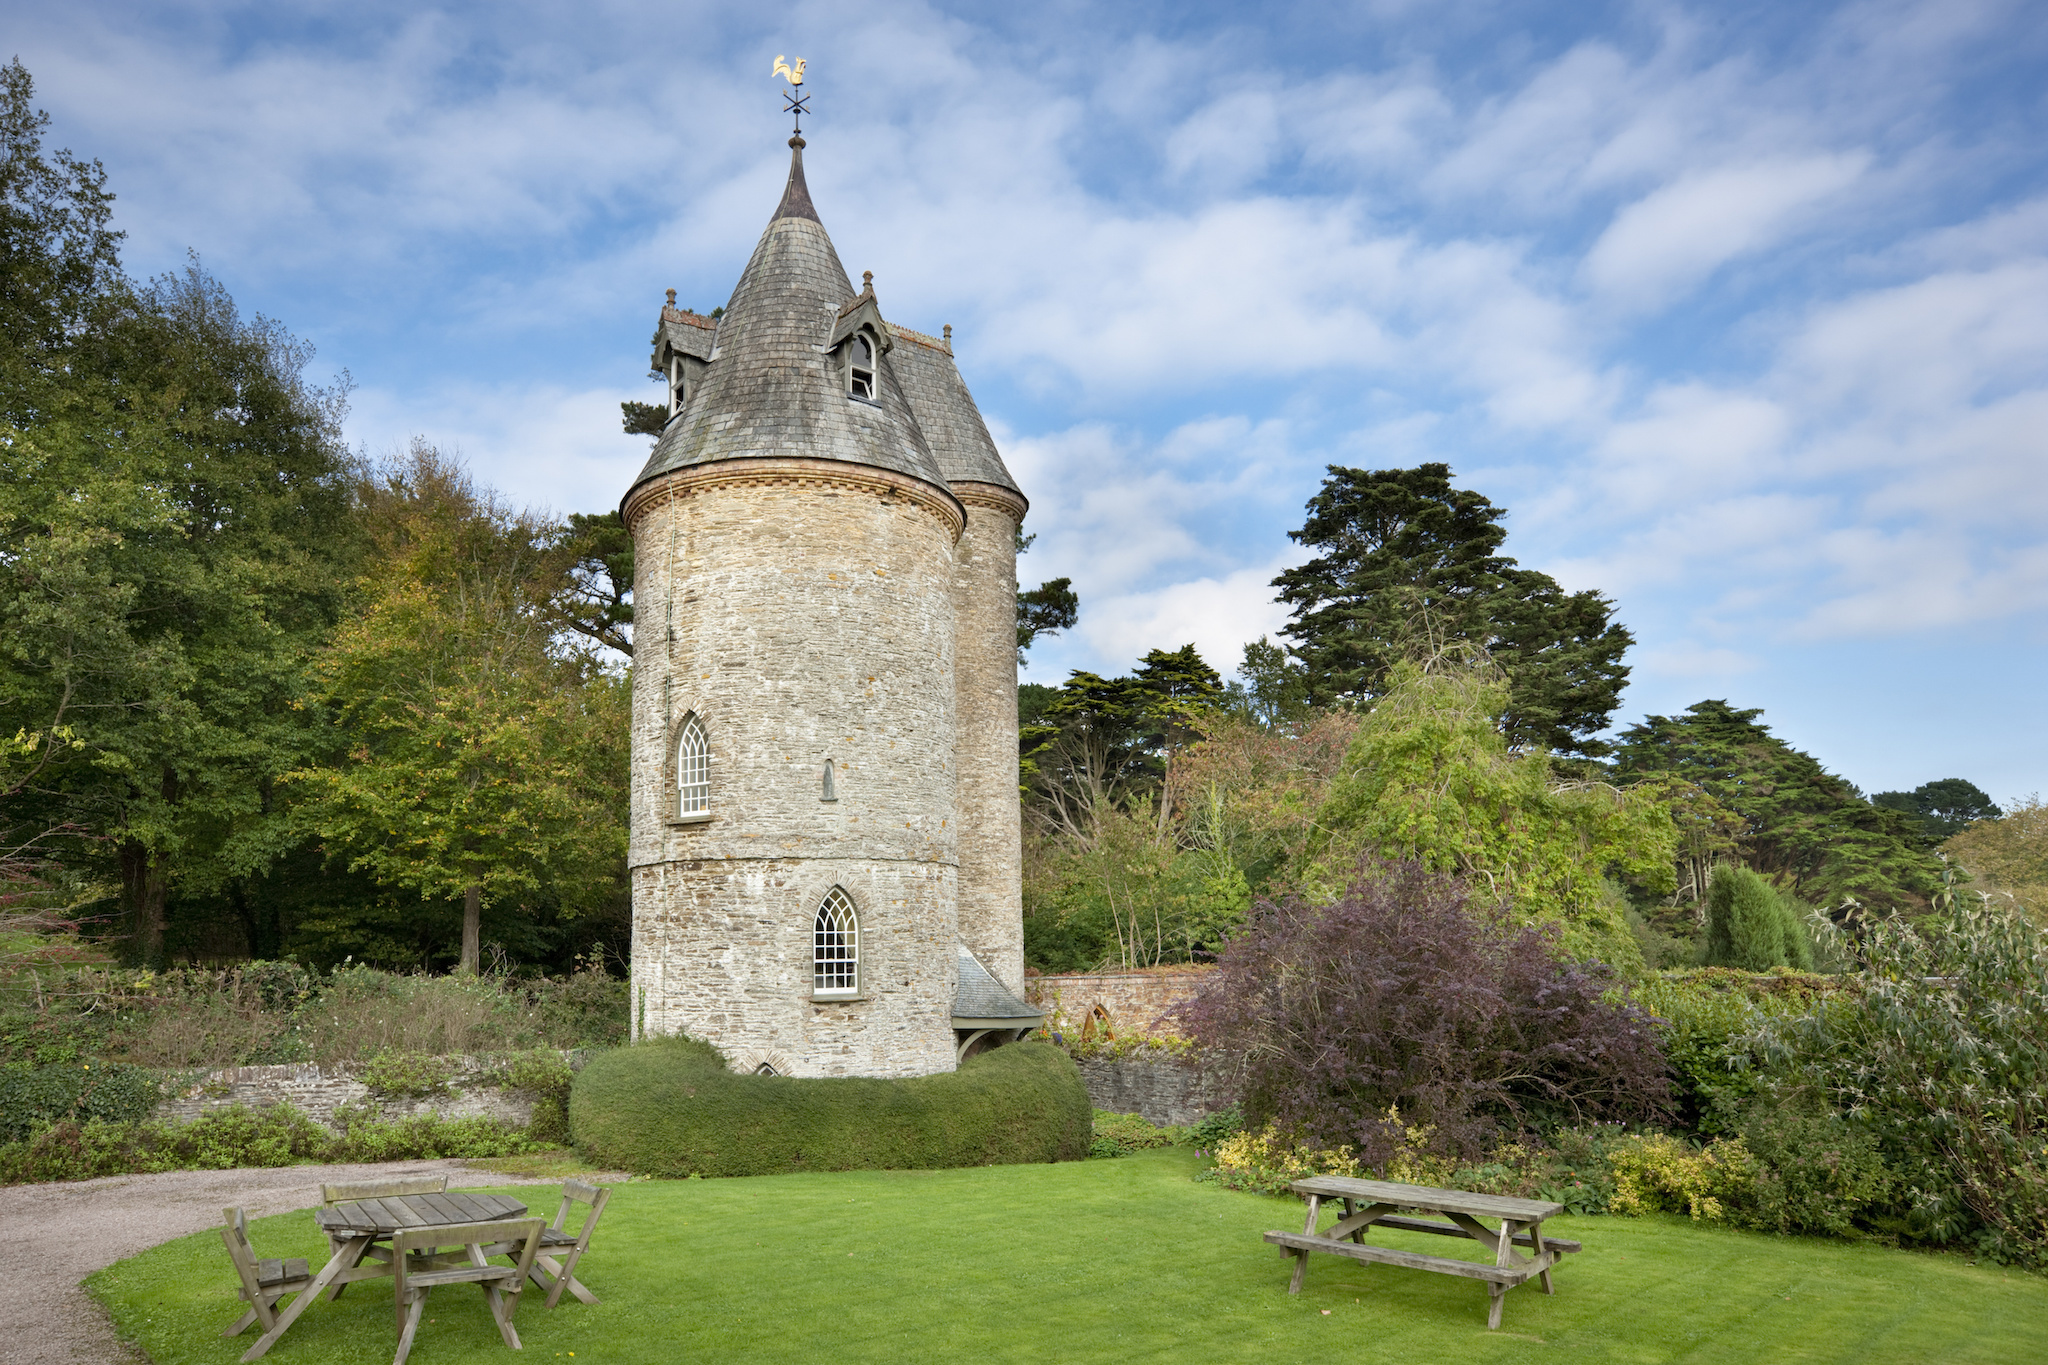 The Water Tower at Trelissick Garden, Cornwall.